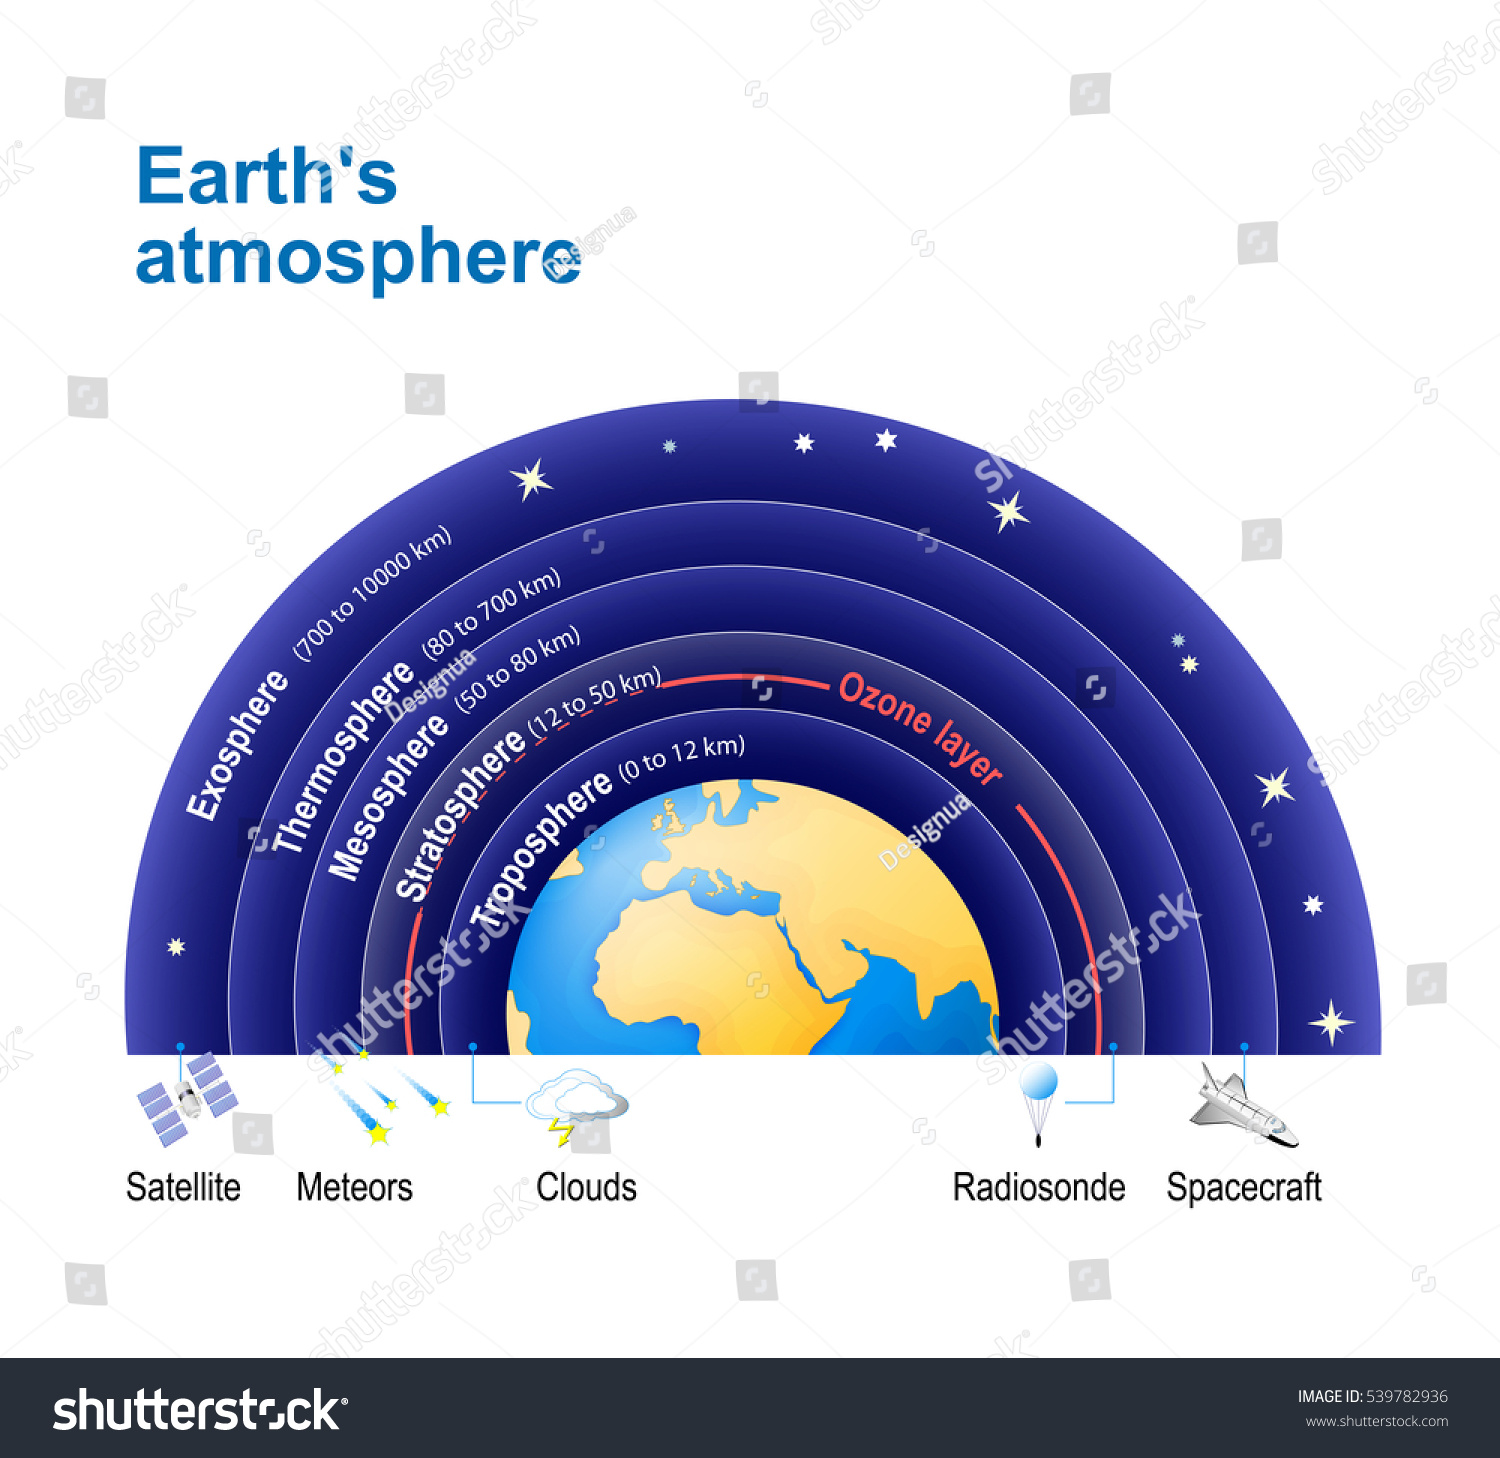 Earths atmosphere ozone layer structure atmosphere em ilustrao earths atmosphere with ozone layer structure of the atmosphere exosphere thermosphere ccuart Choice Image